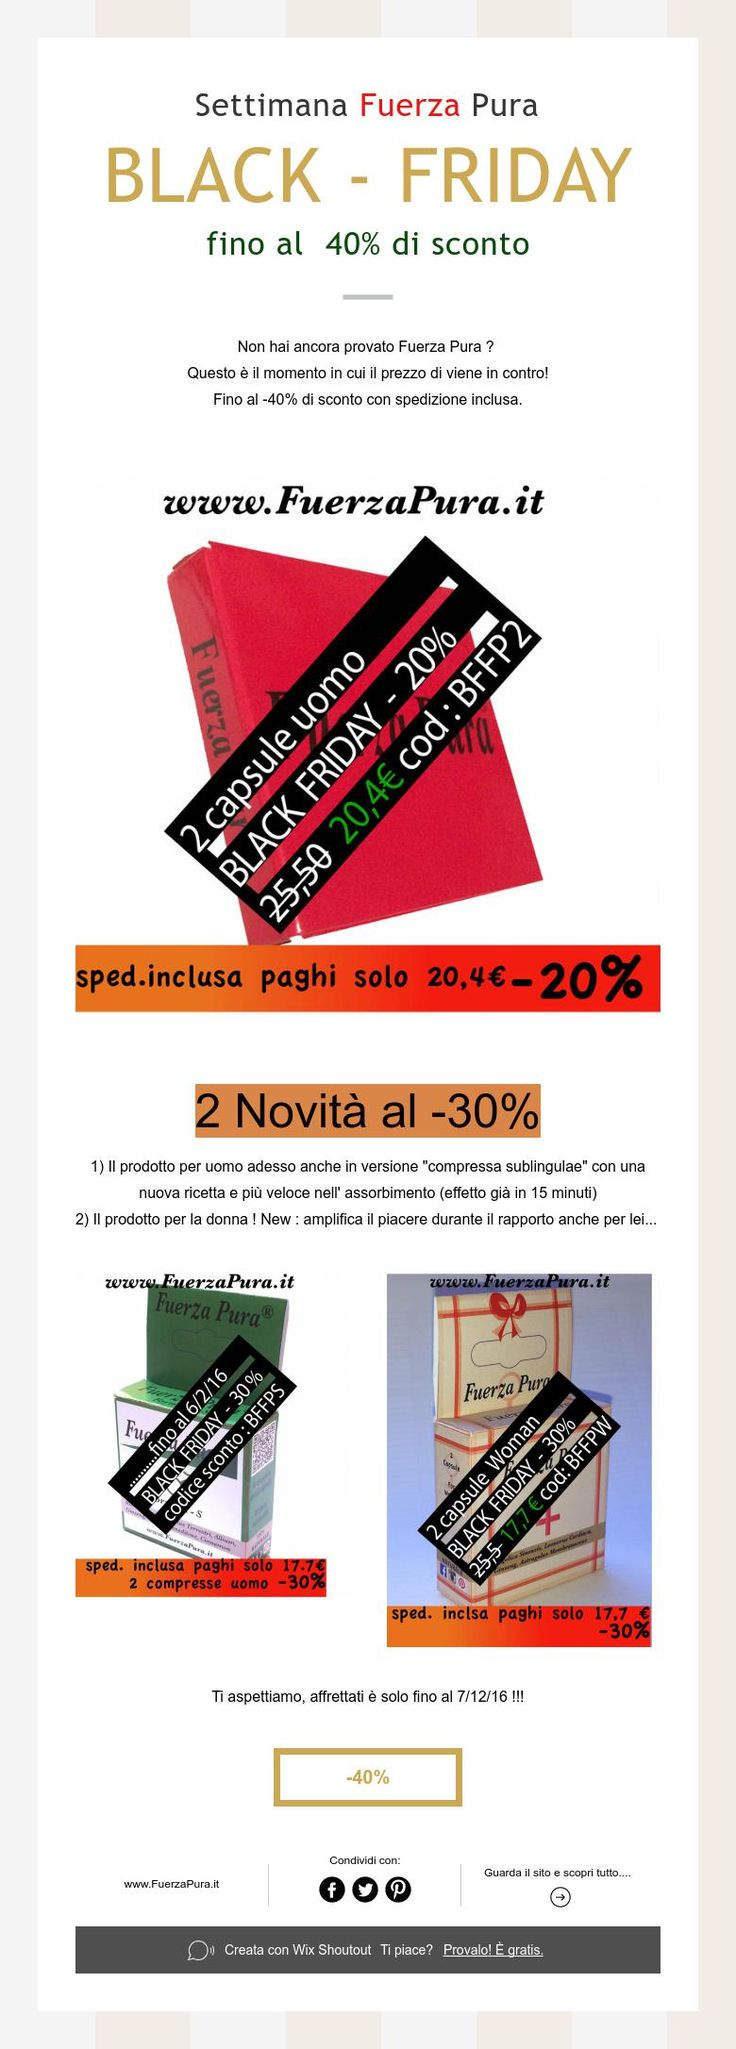 Fuerza Pura BLACK-FRIDAY - 40%